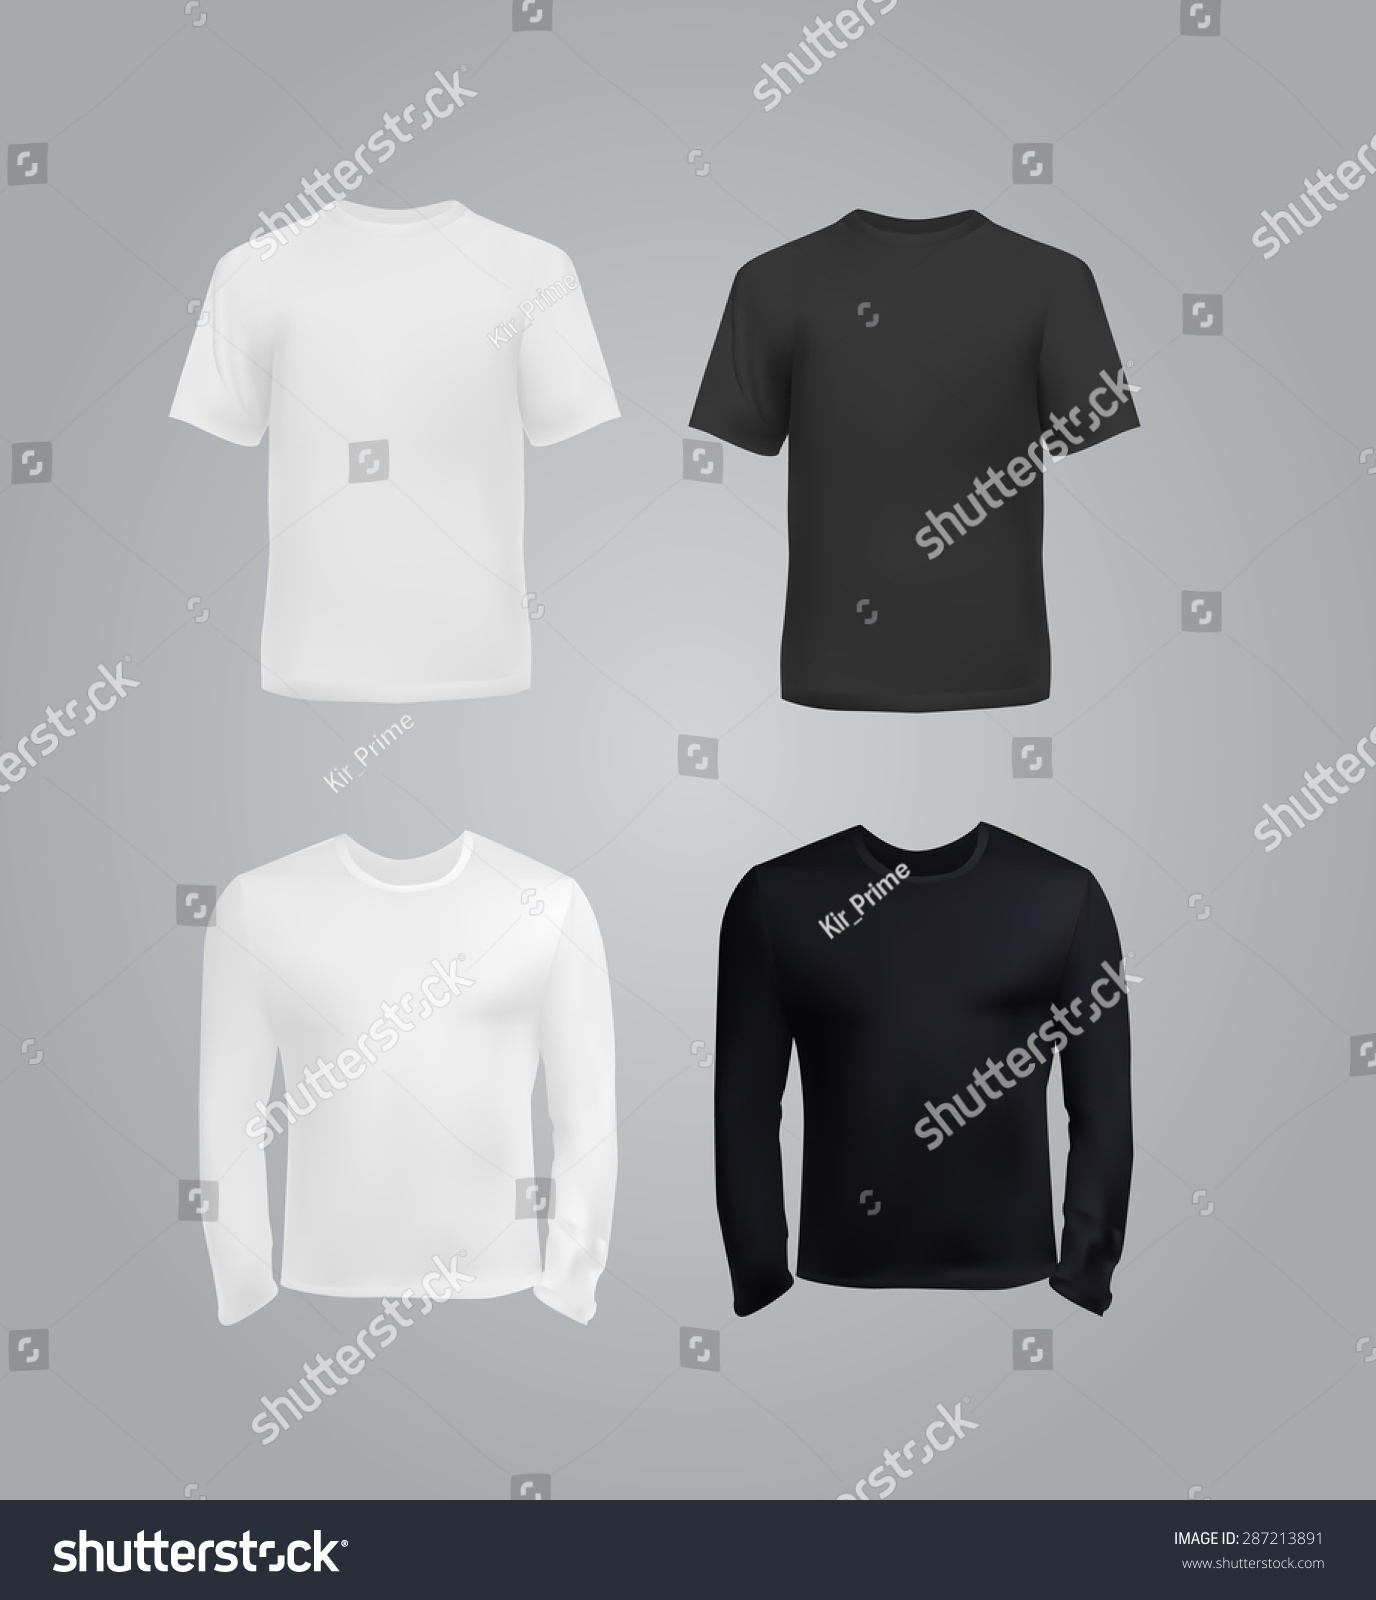 White t shirt eps - Black And White T Shirt Templates For Men Vector Eps10 Illustration